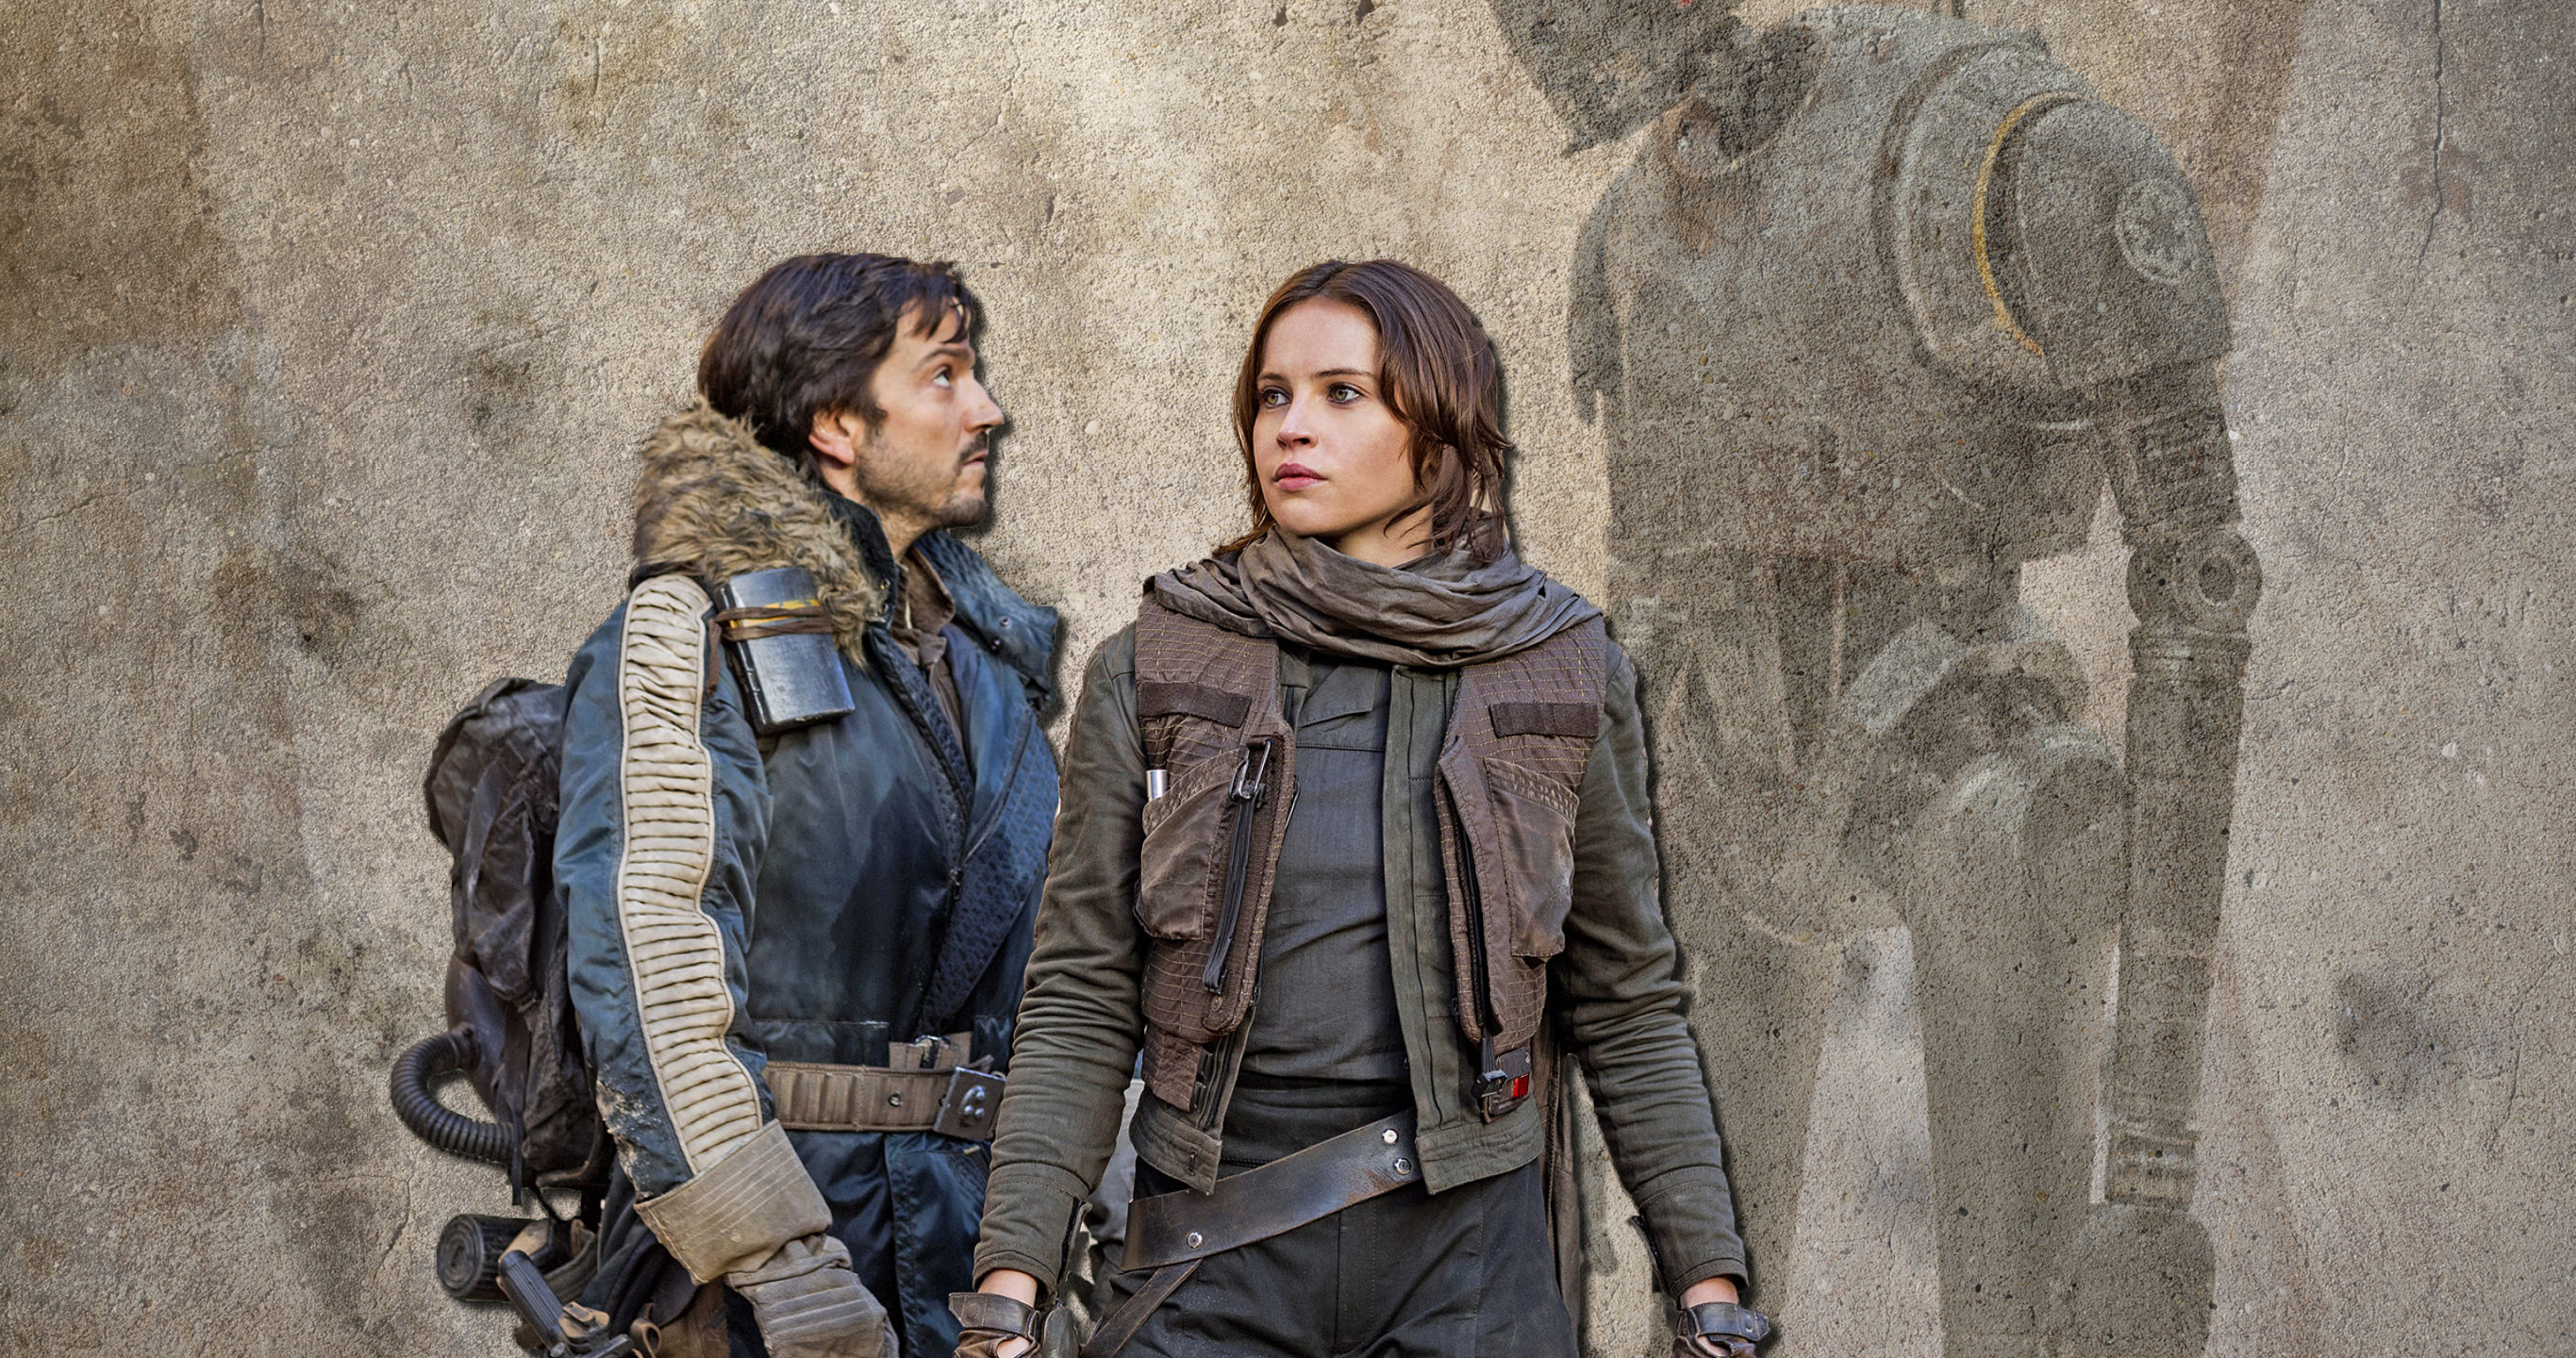 Your Destiny web cassian jyn analysisjpg